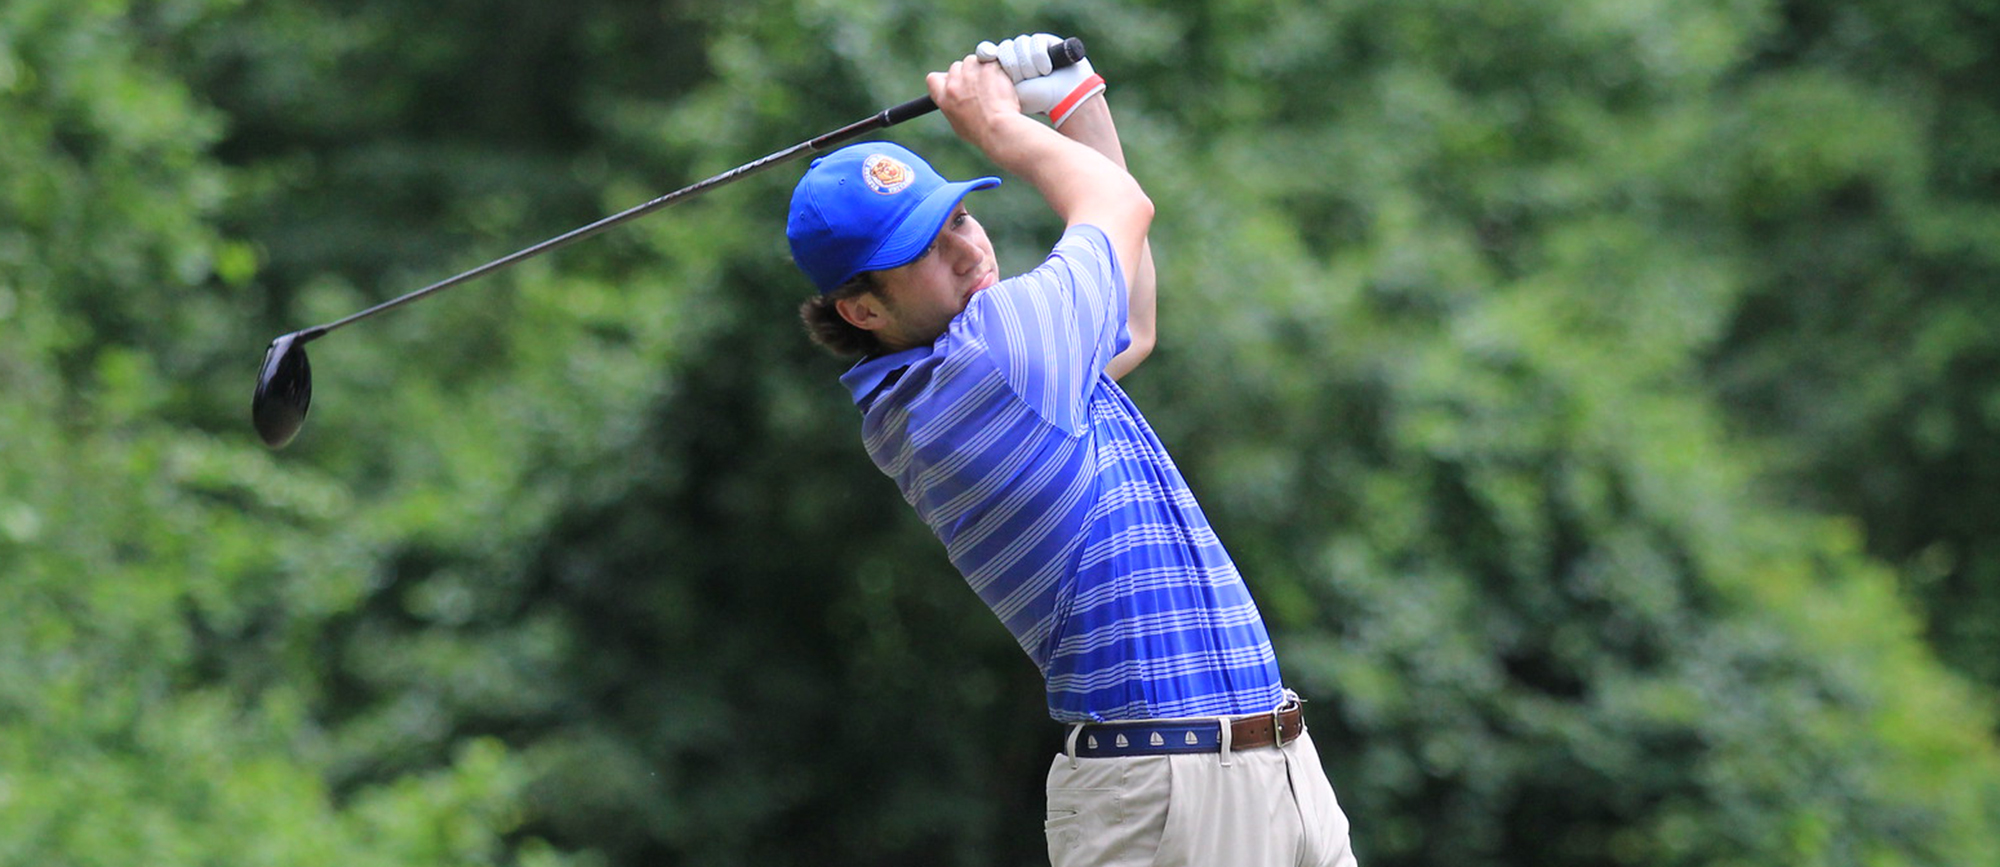 Ryan Zogby is tied for 4th place after the opening round of the UMass Dartmouth Invitational with a score of 76 (+4).